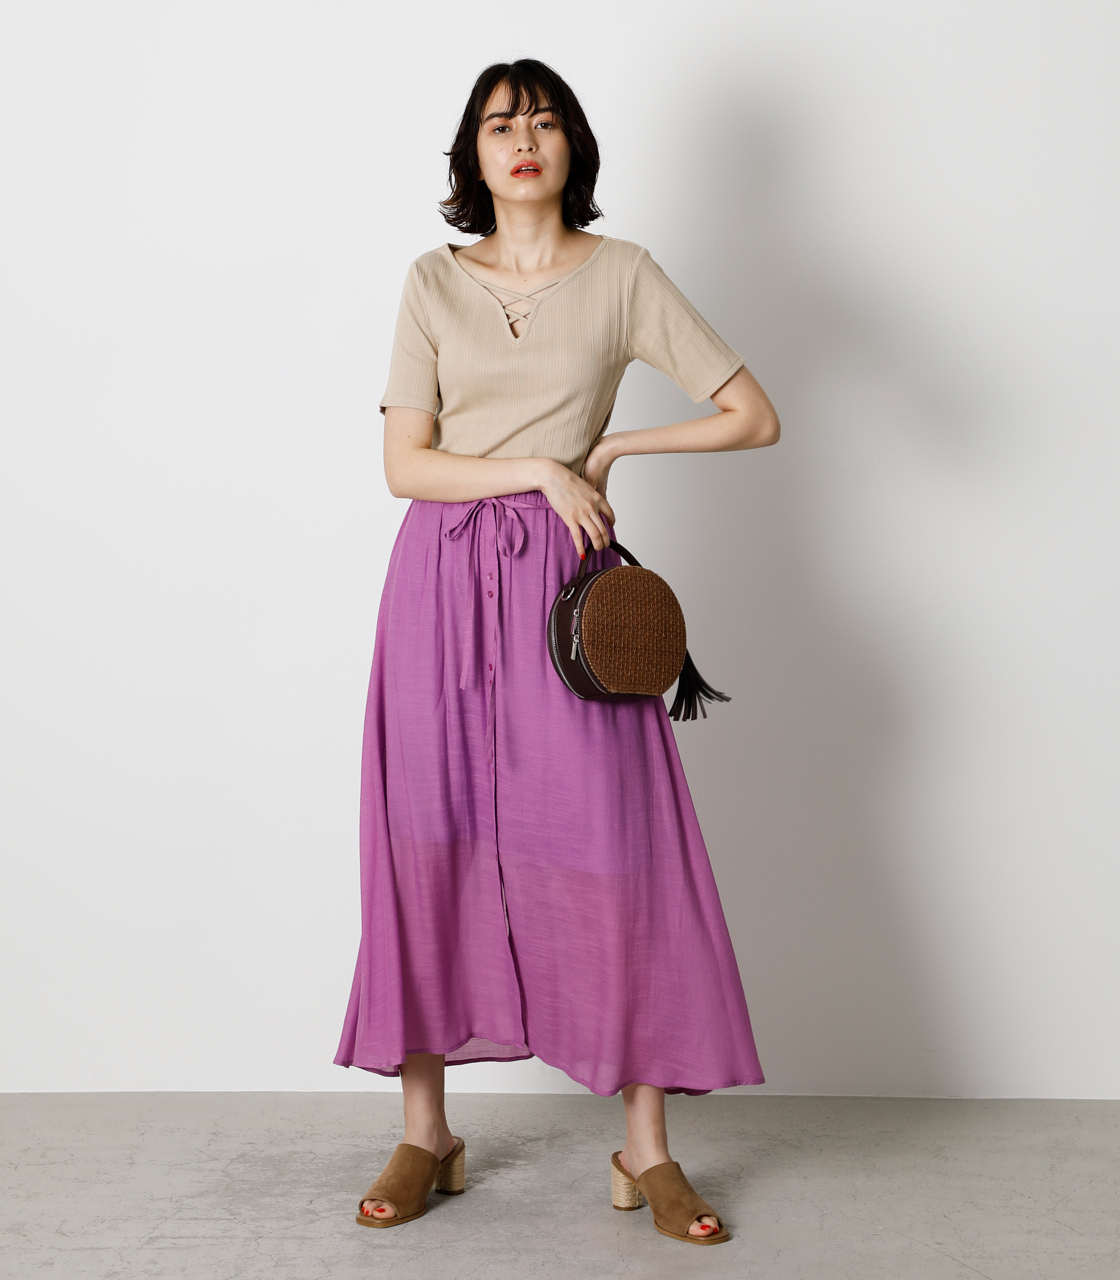 SHEER RELAX SKIRT/シアーリラックススカート 詳細画像 PUR 3